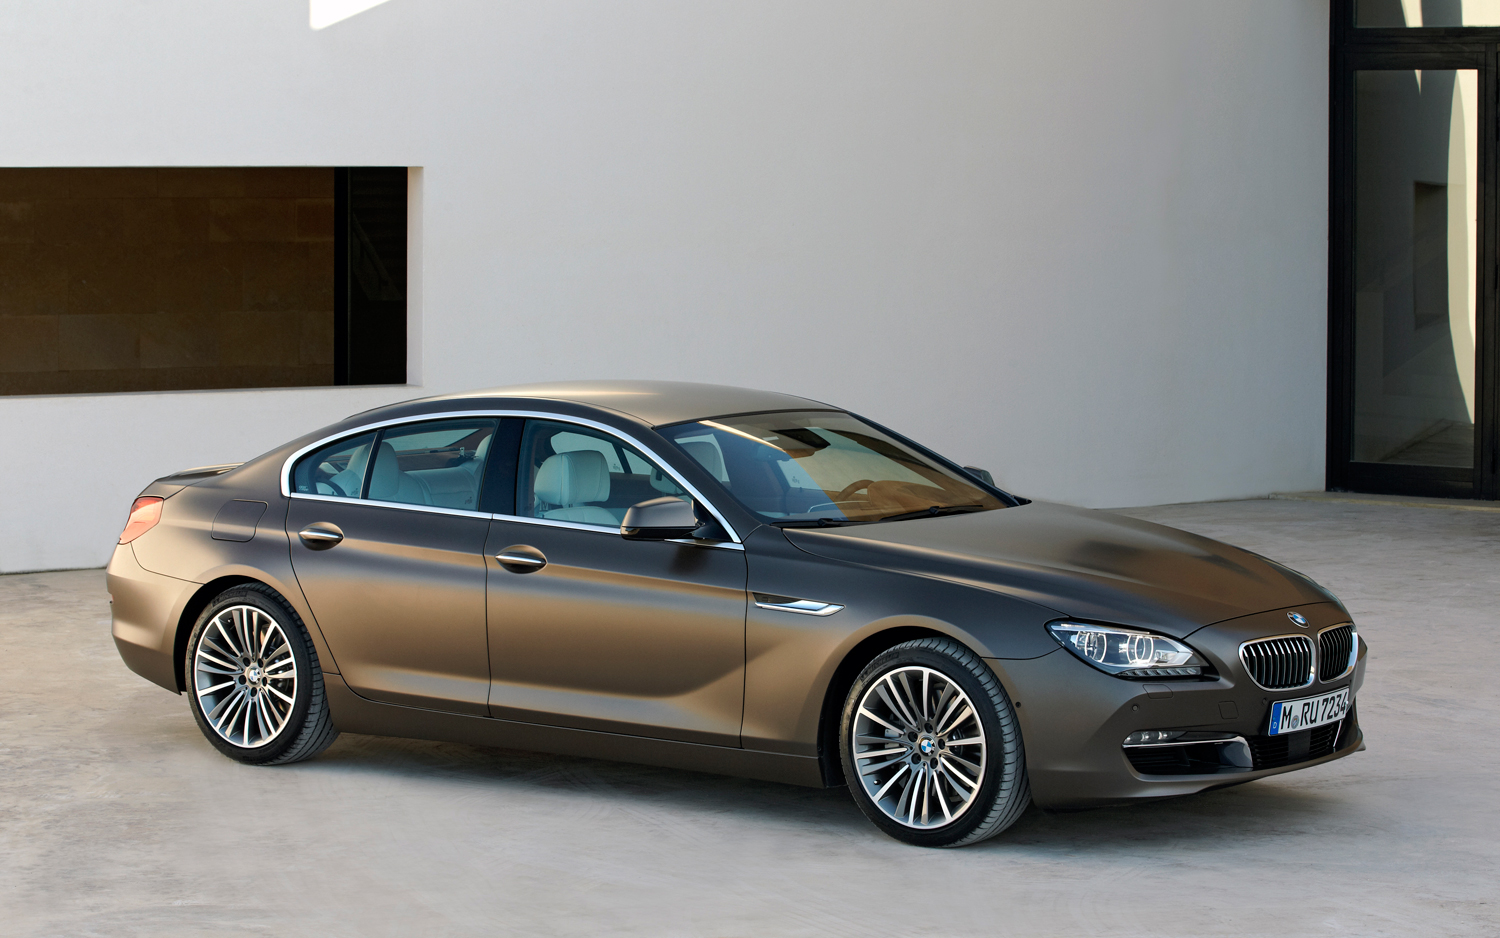 2013 Bmw 6 Series Image 13